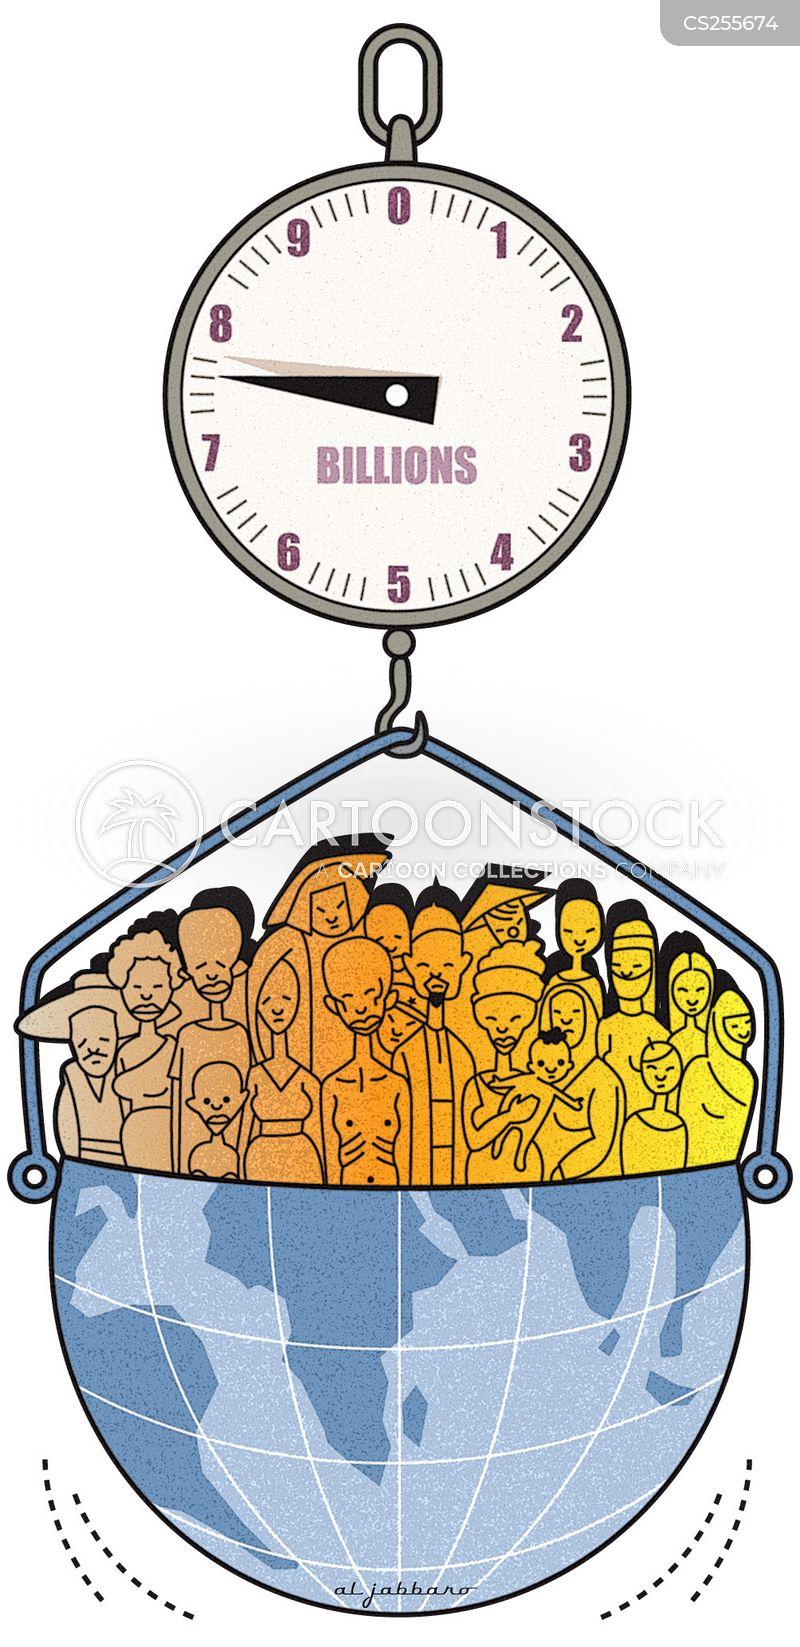 an introduction to the issue of growing population on earth Books on overpopulation a majority felt that world population growth is a problem but is a college textbook and a good introduction to population issues.